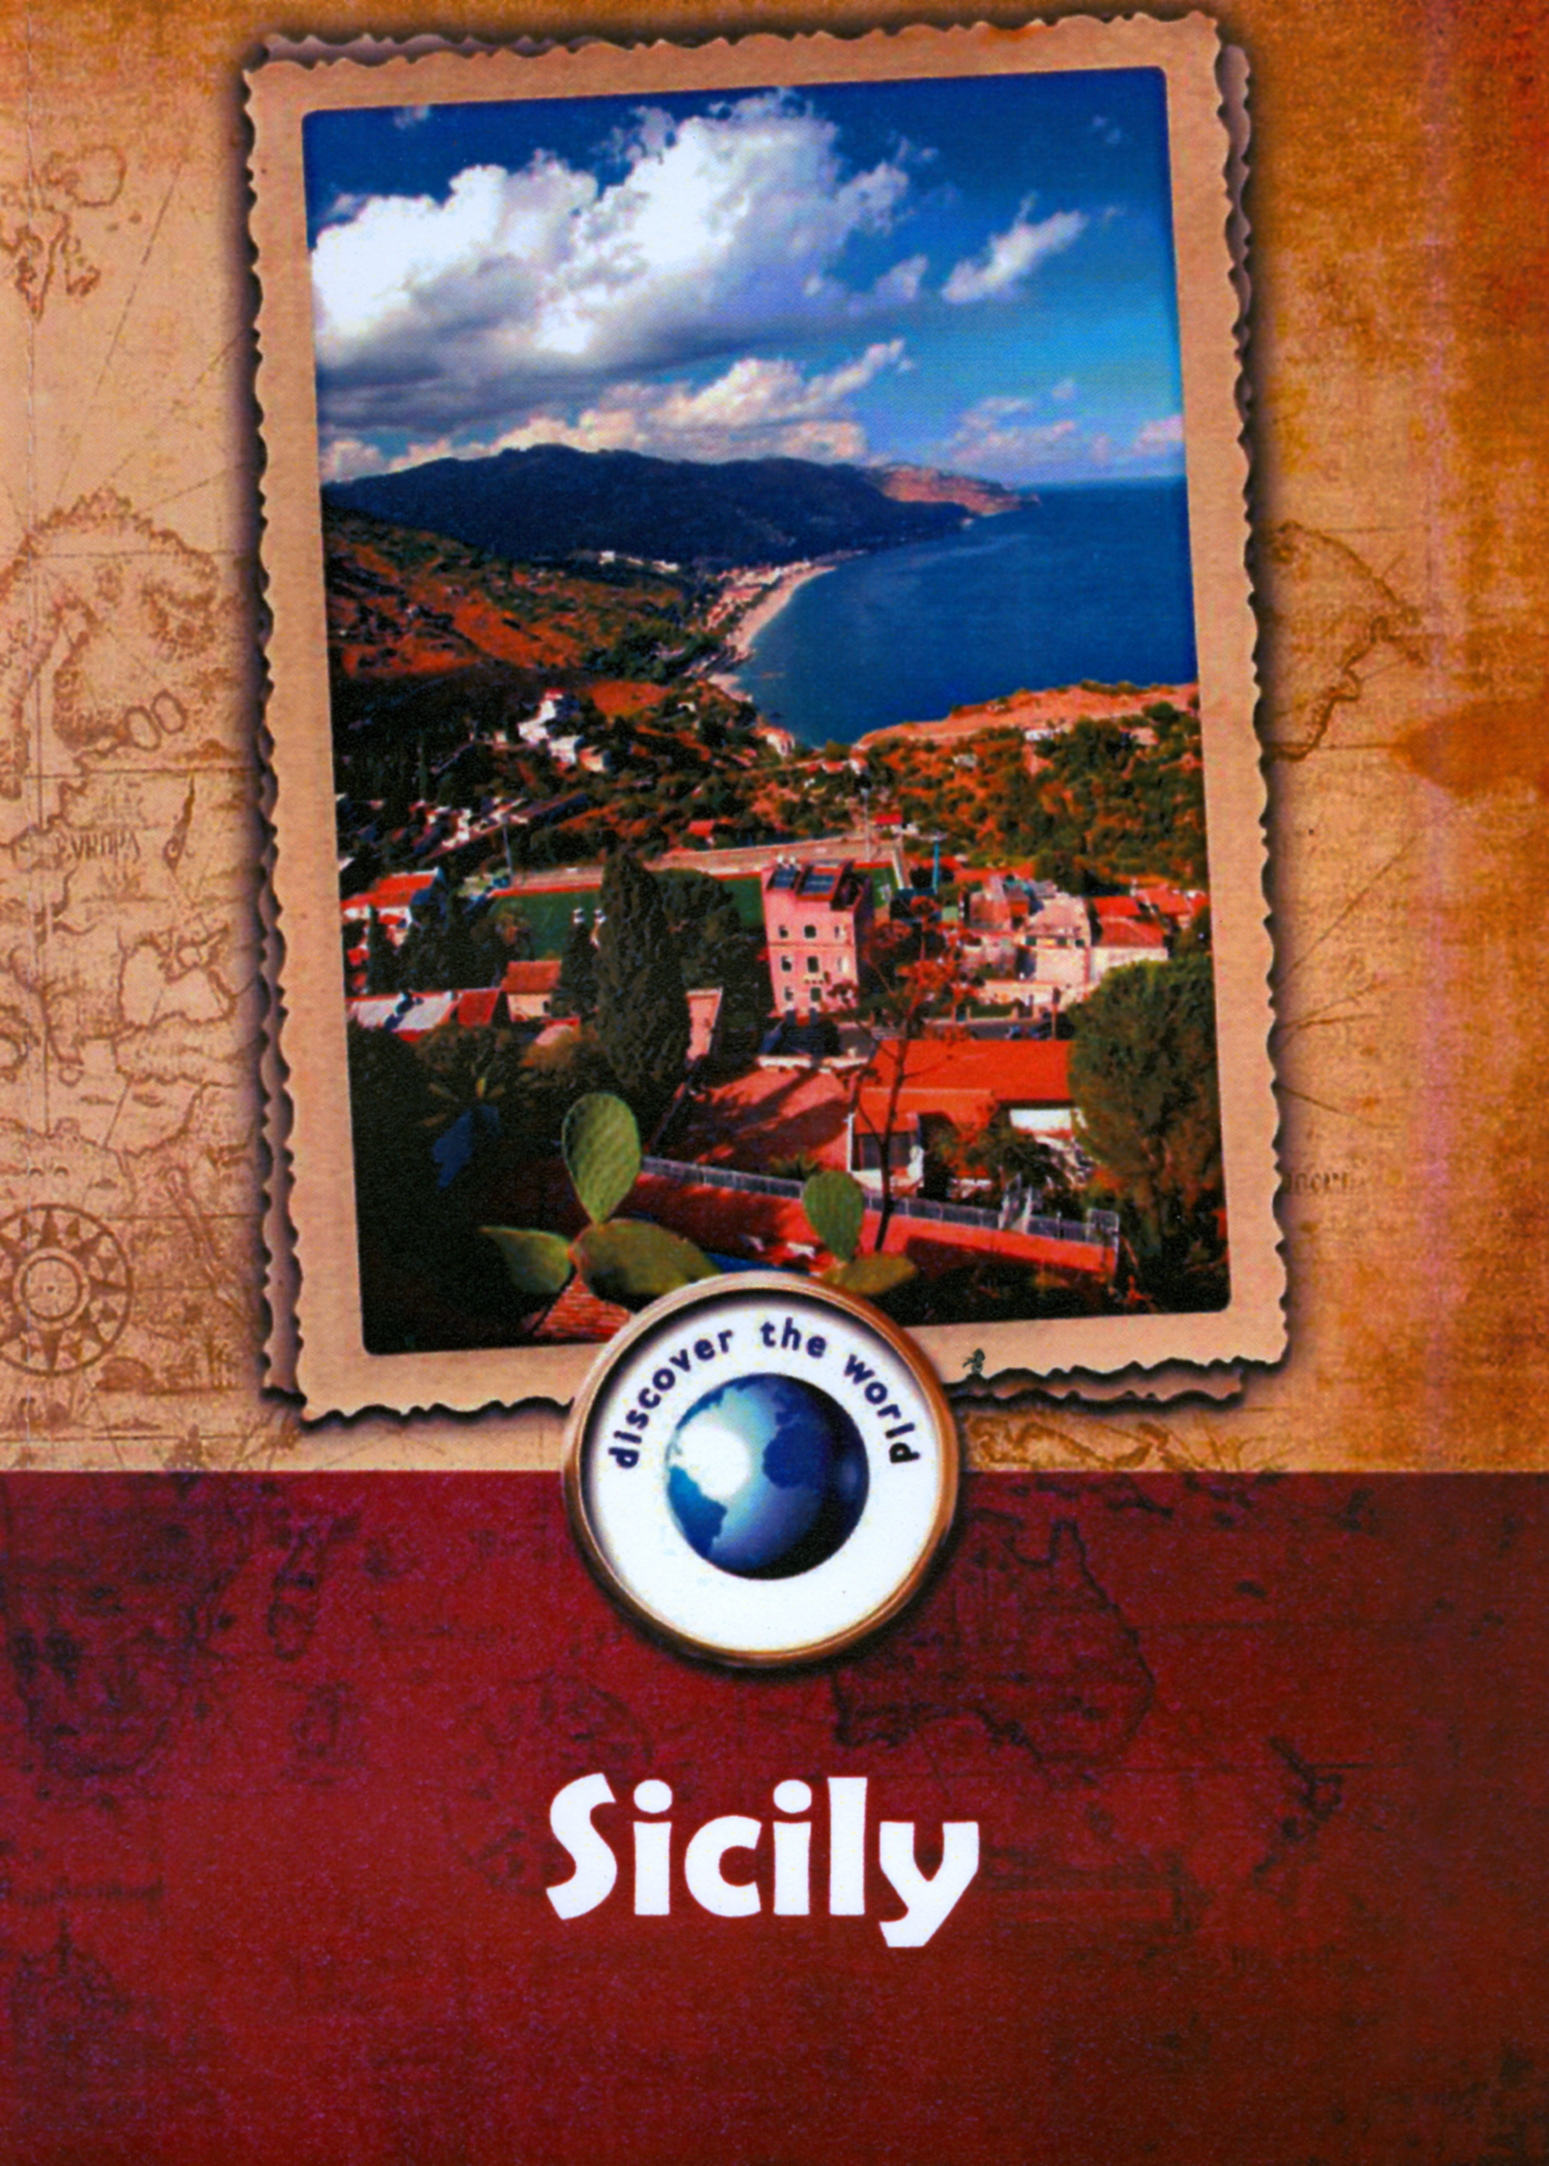 Discover the World: Sicily